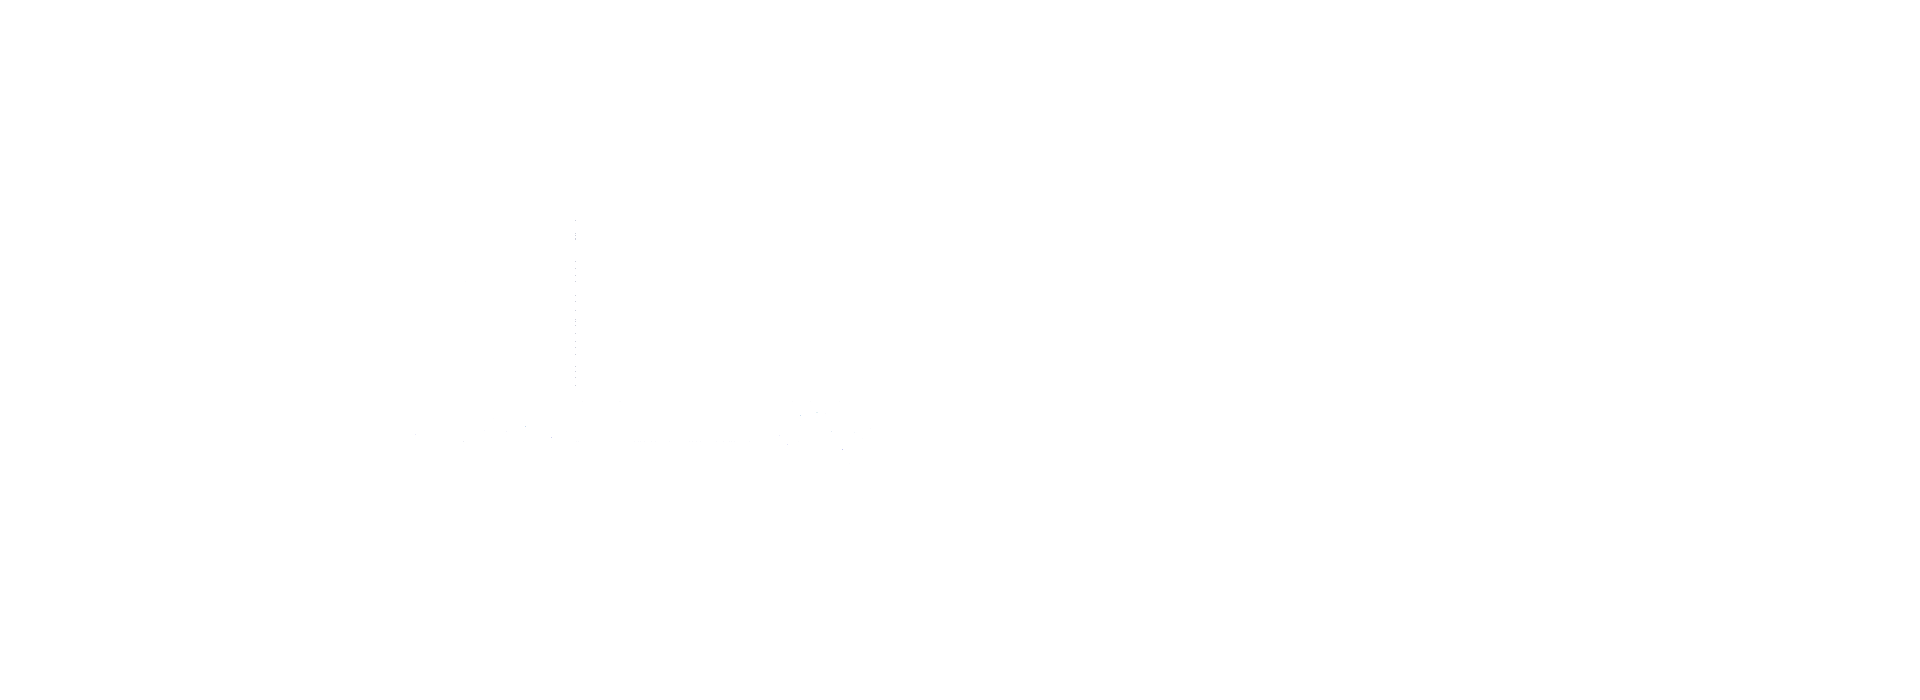 Free shipping from 250€ within the EU